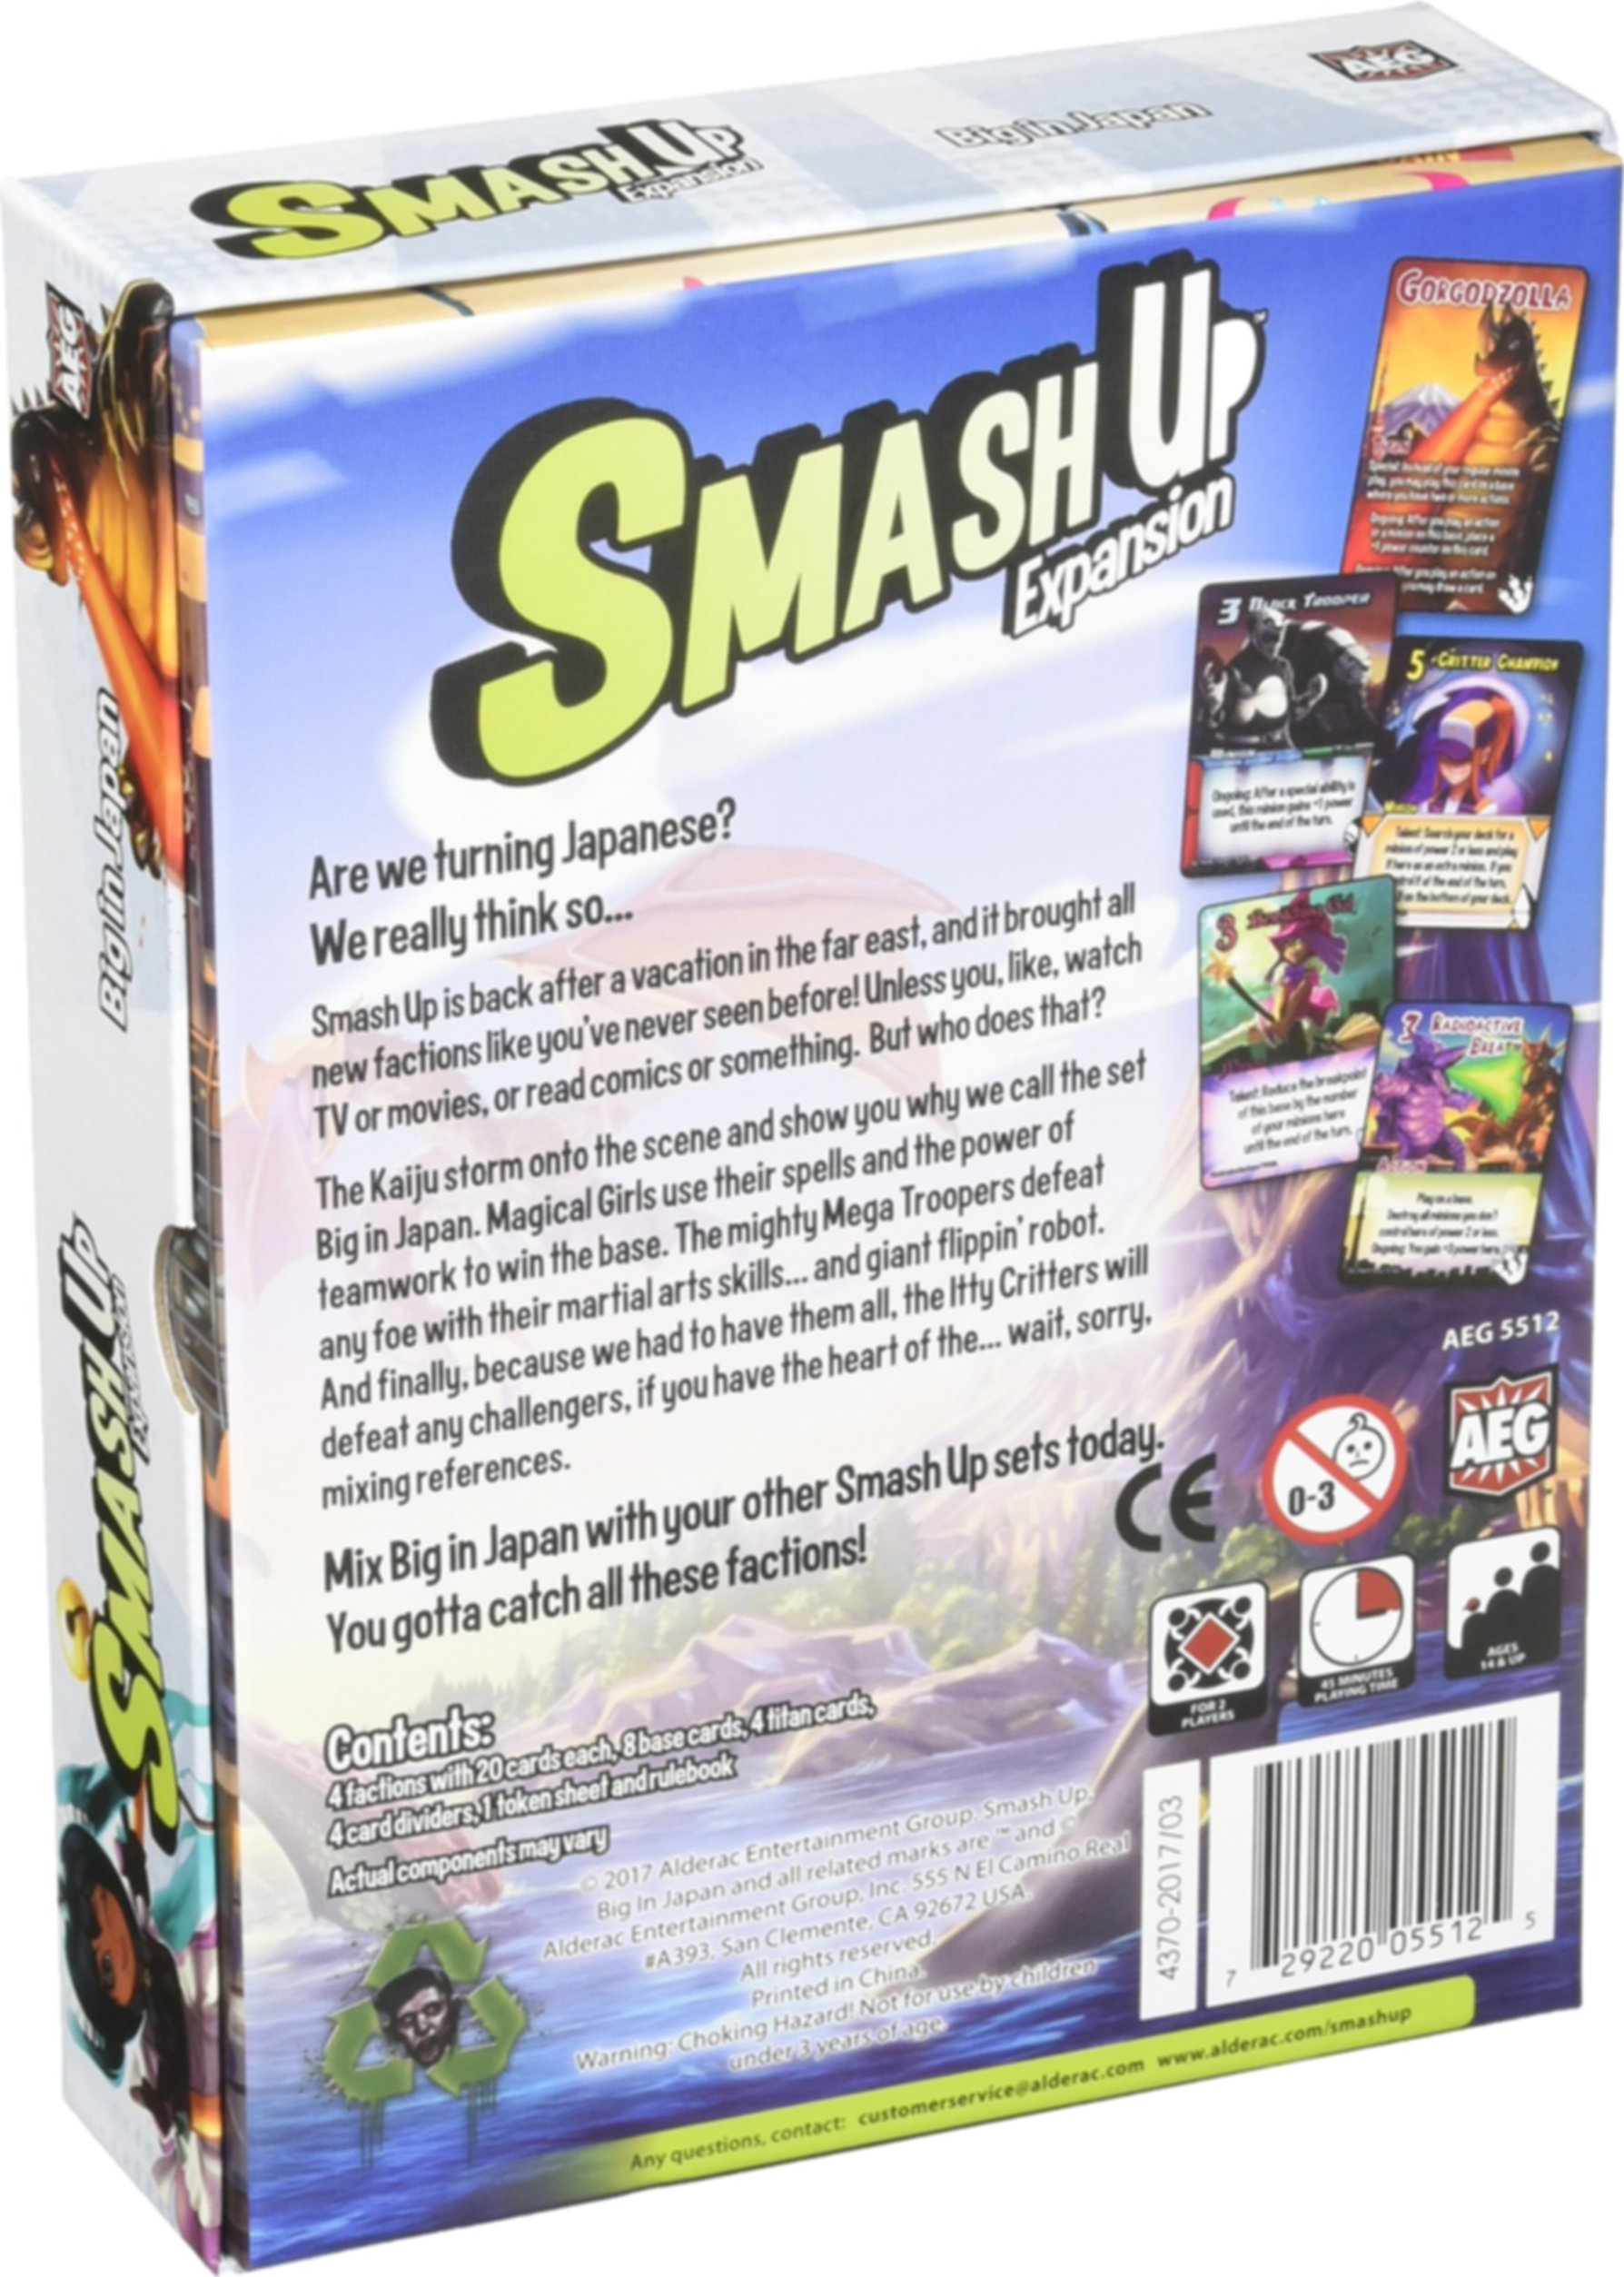 Smash Up: Big in Japan back of the box